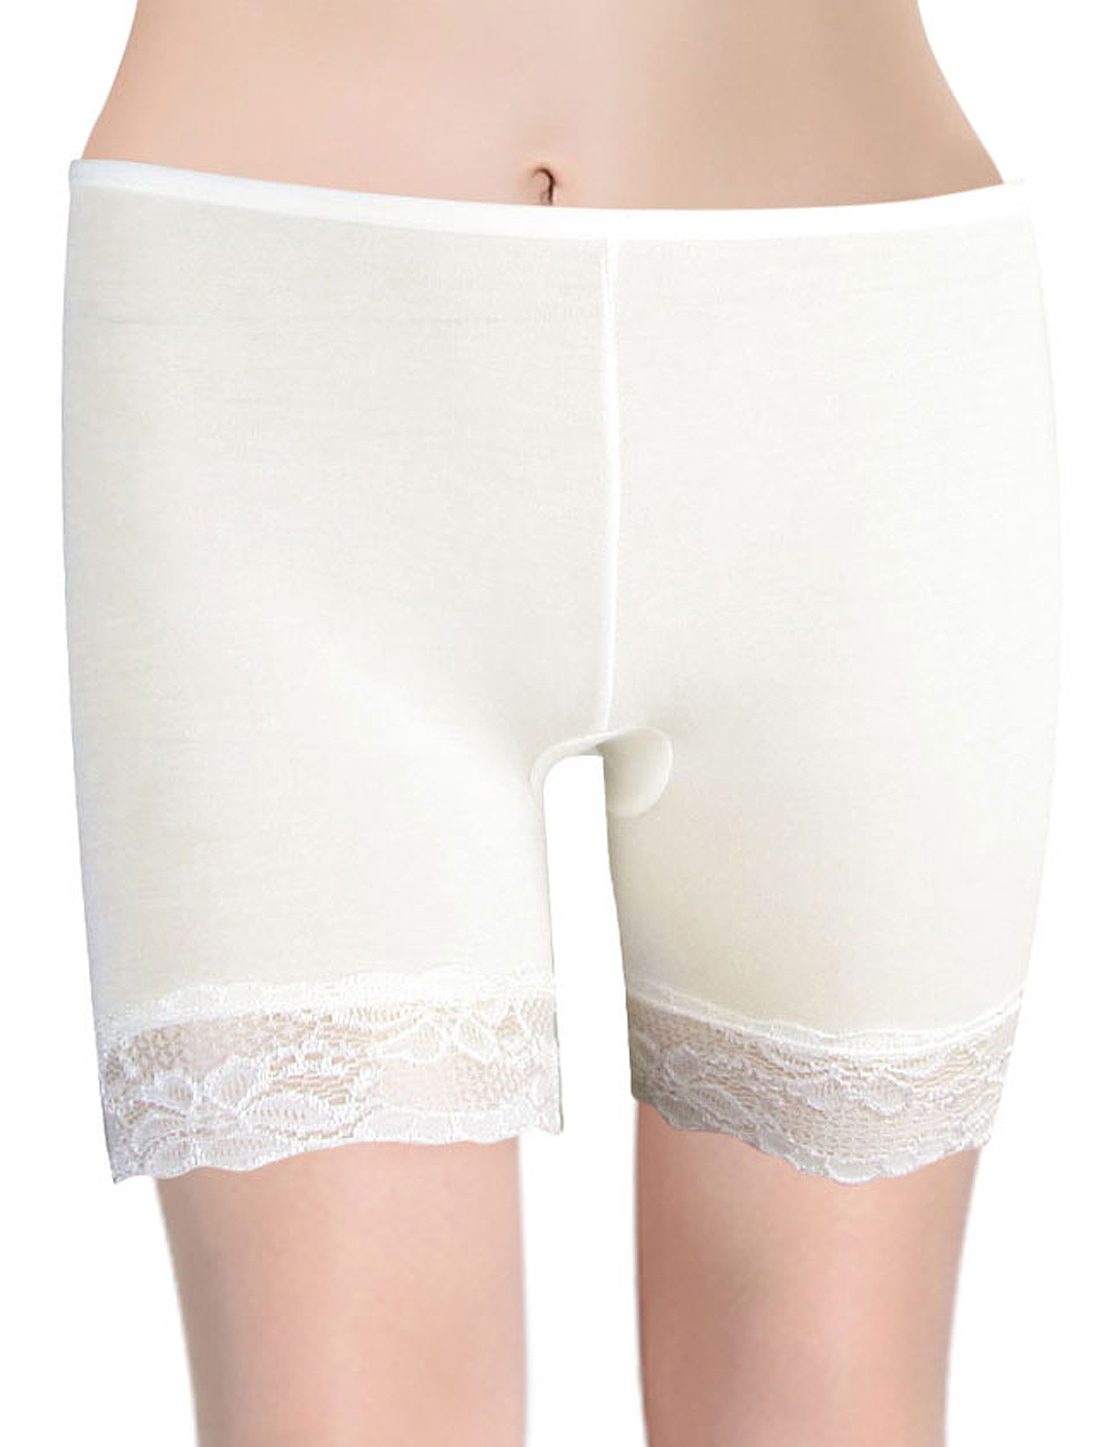 Elastic Waistband Low Rise Skinny Safety Shorts White XS for Woman